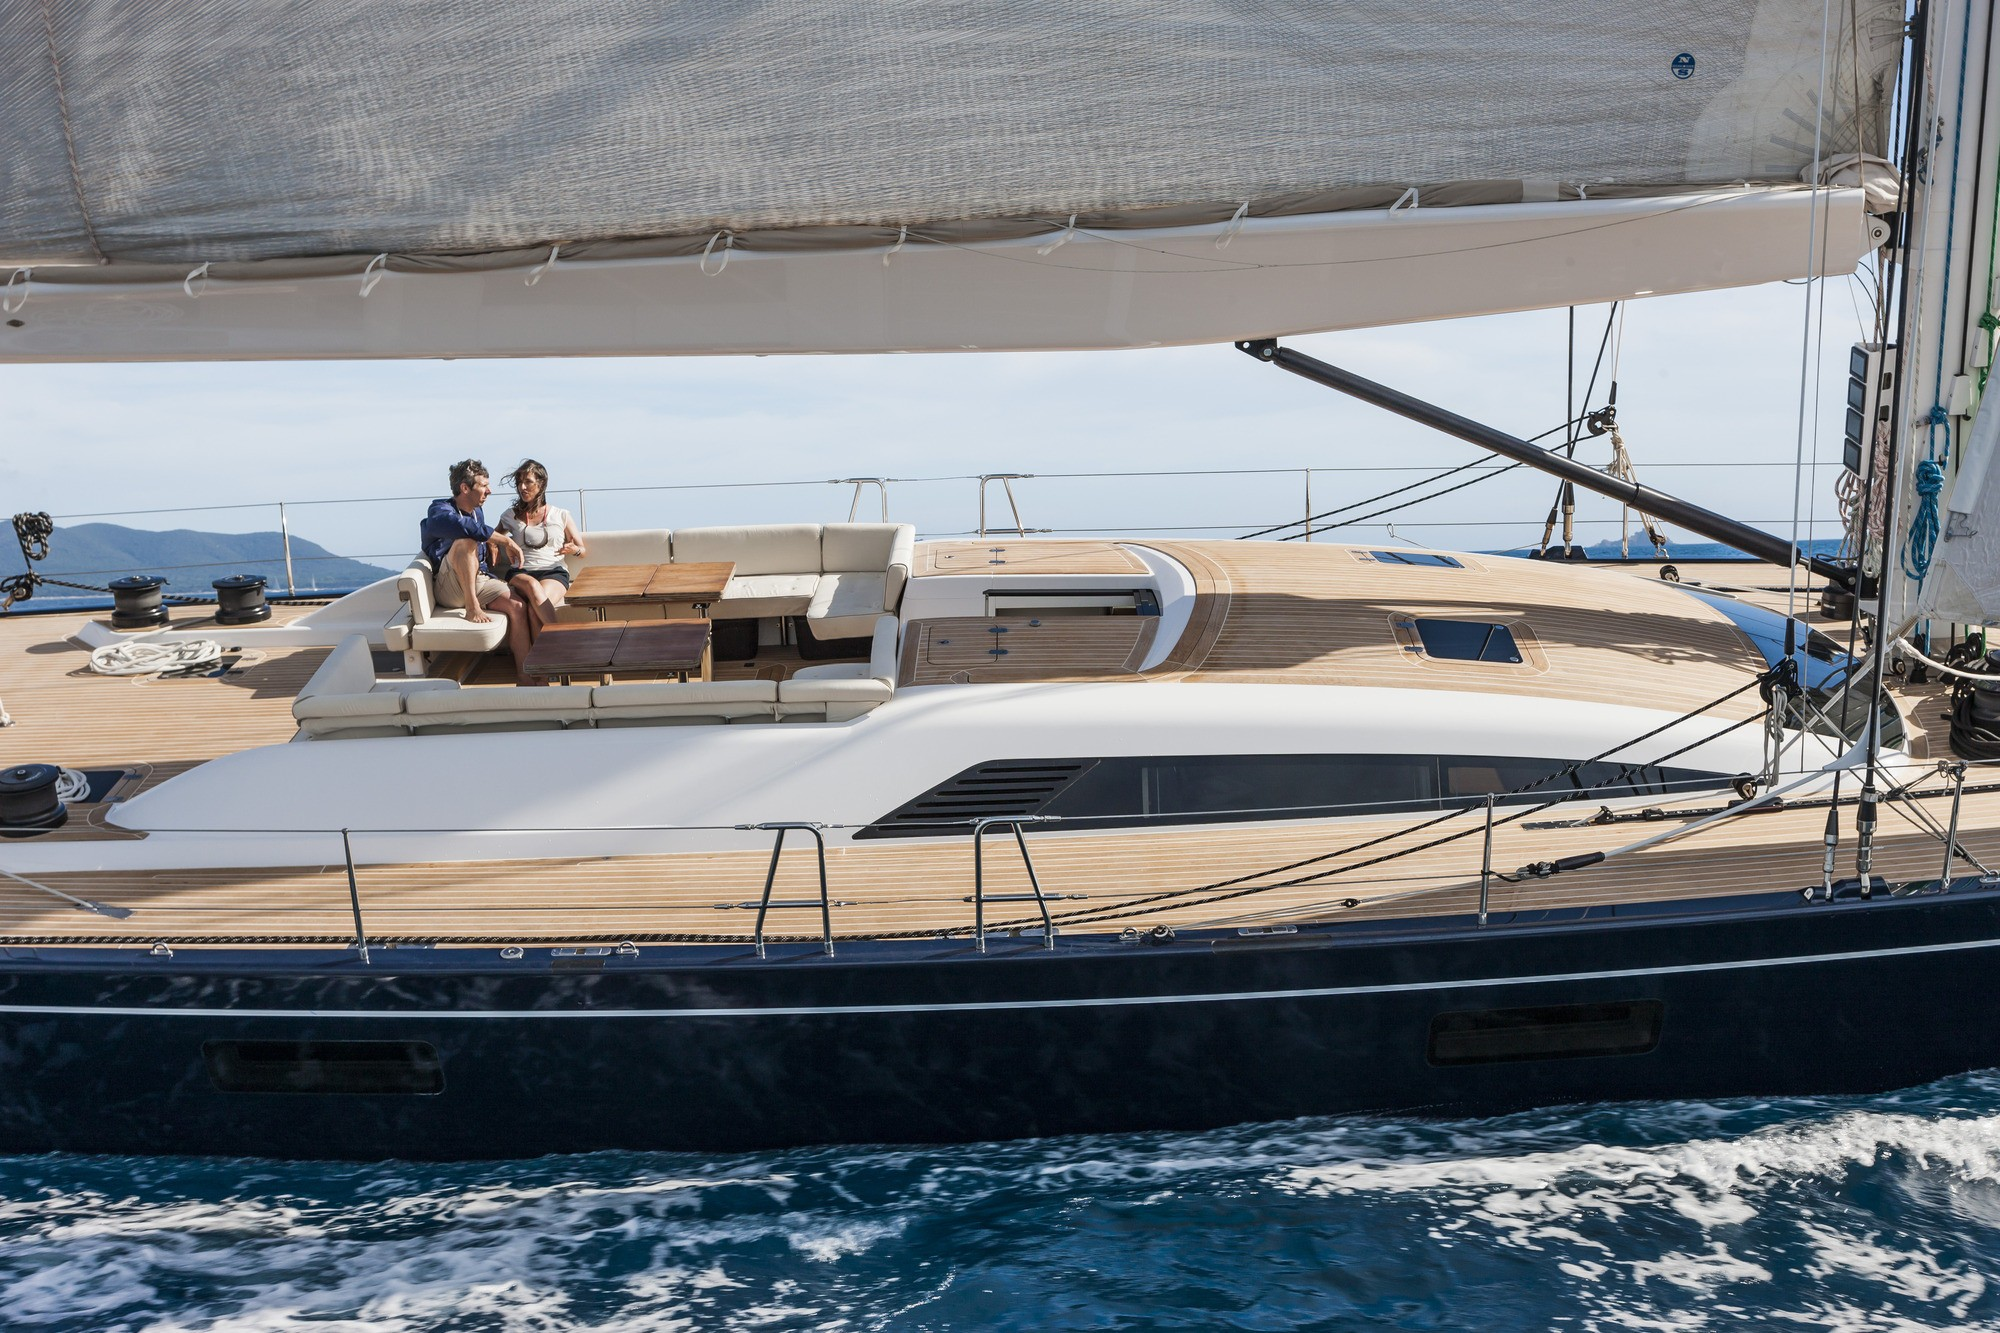 The 27m Yacht SOLLEONE III